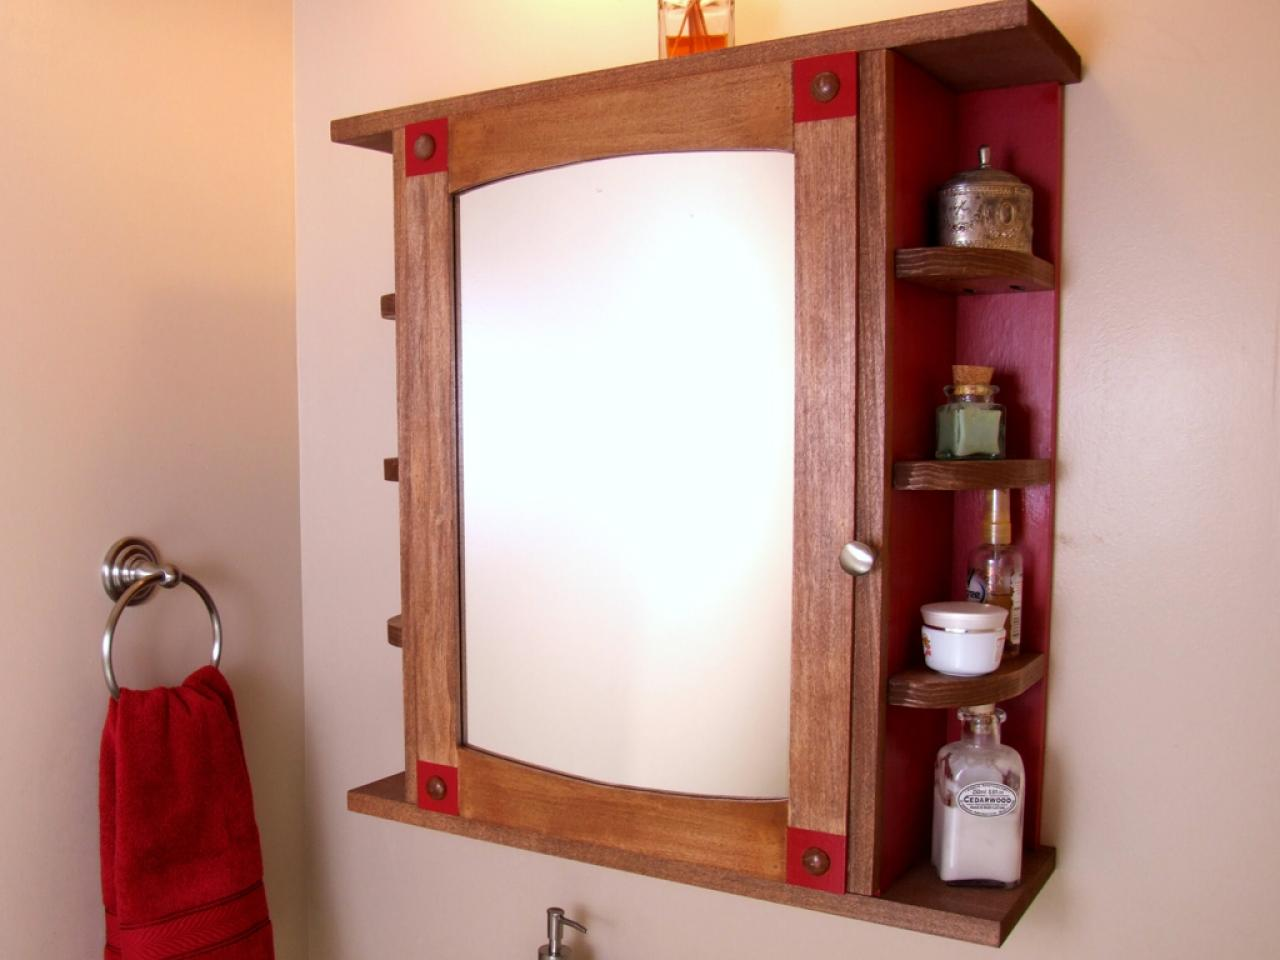 Wooden bathroom mirror cabinets - How To Build A Bathroom Medicine Cabinet